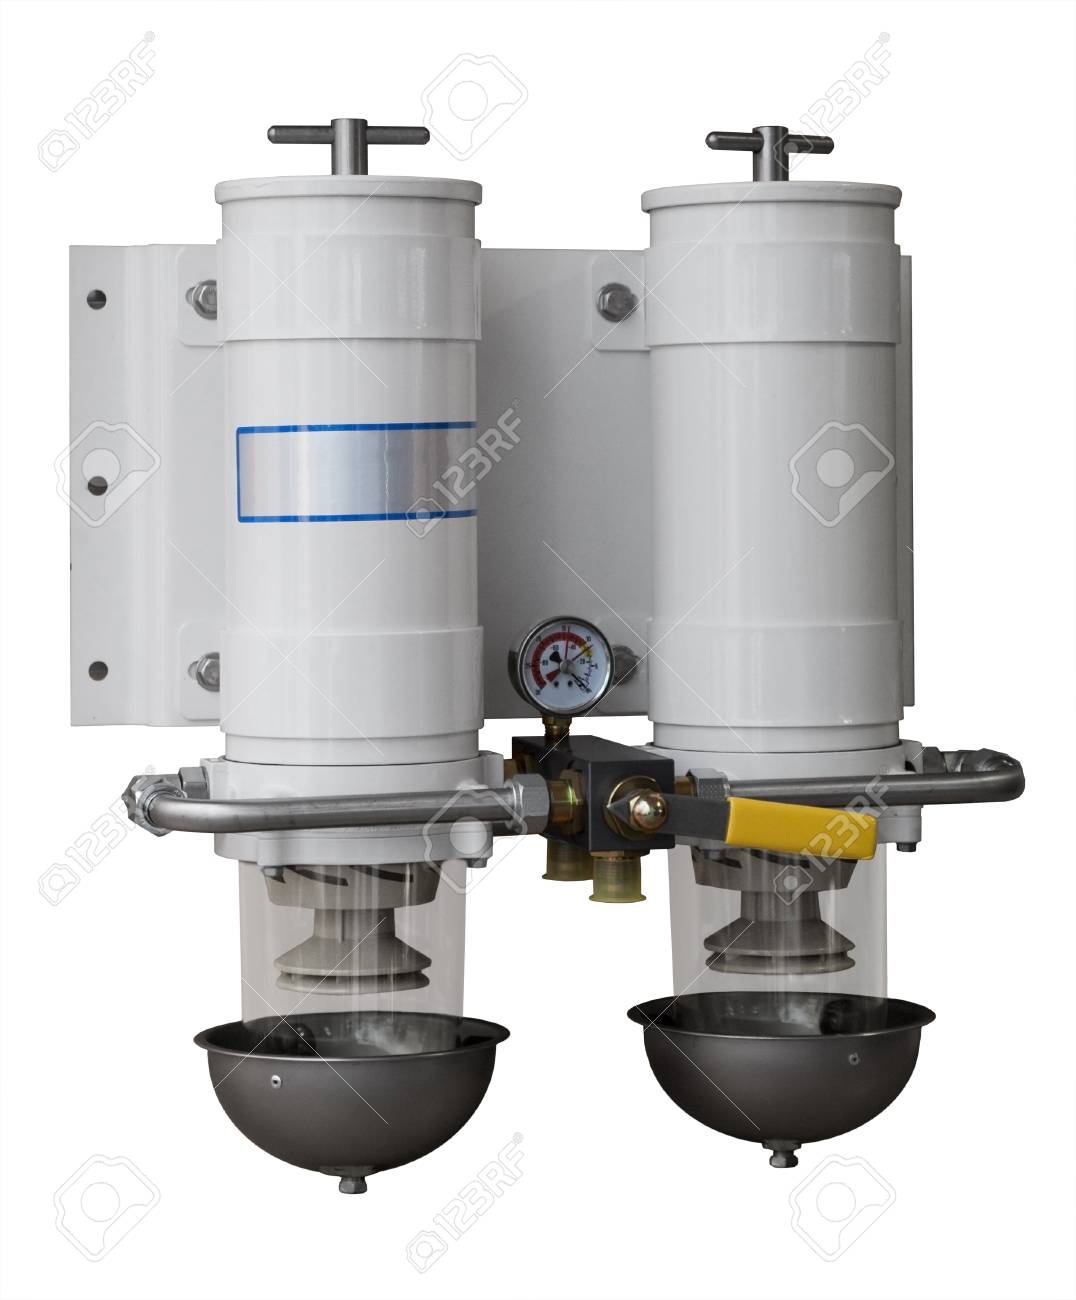 water separator for boat